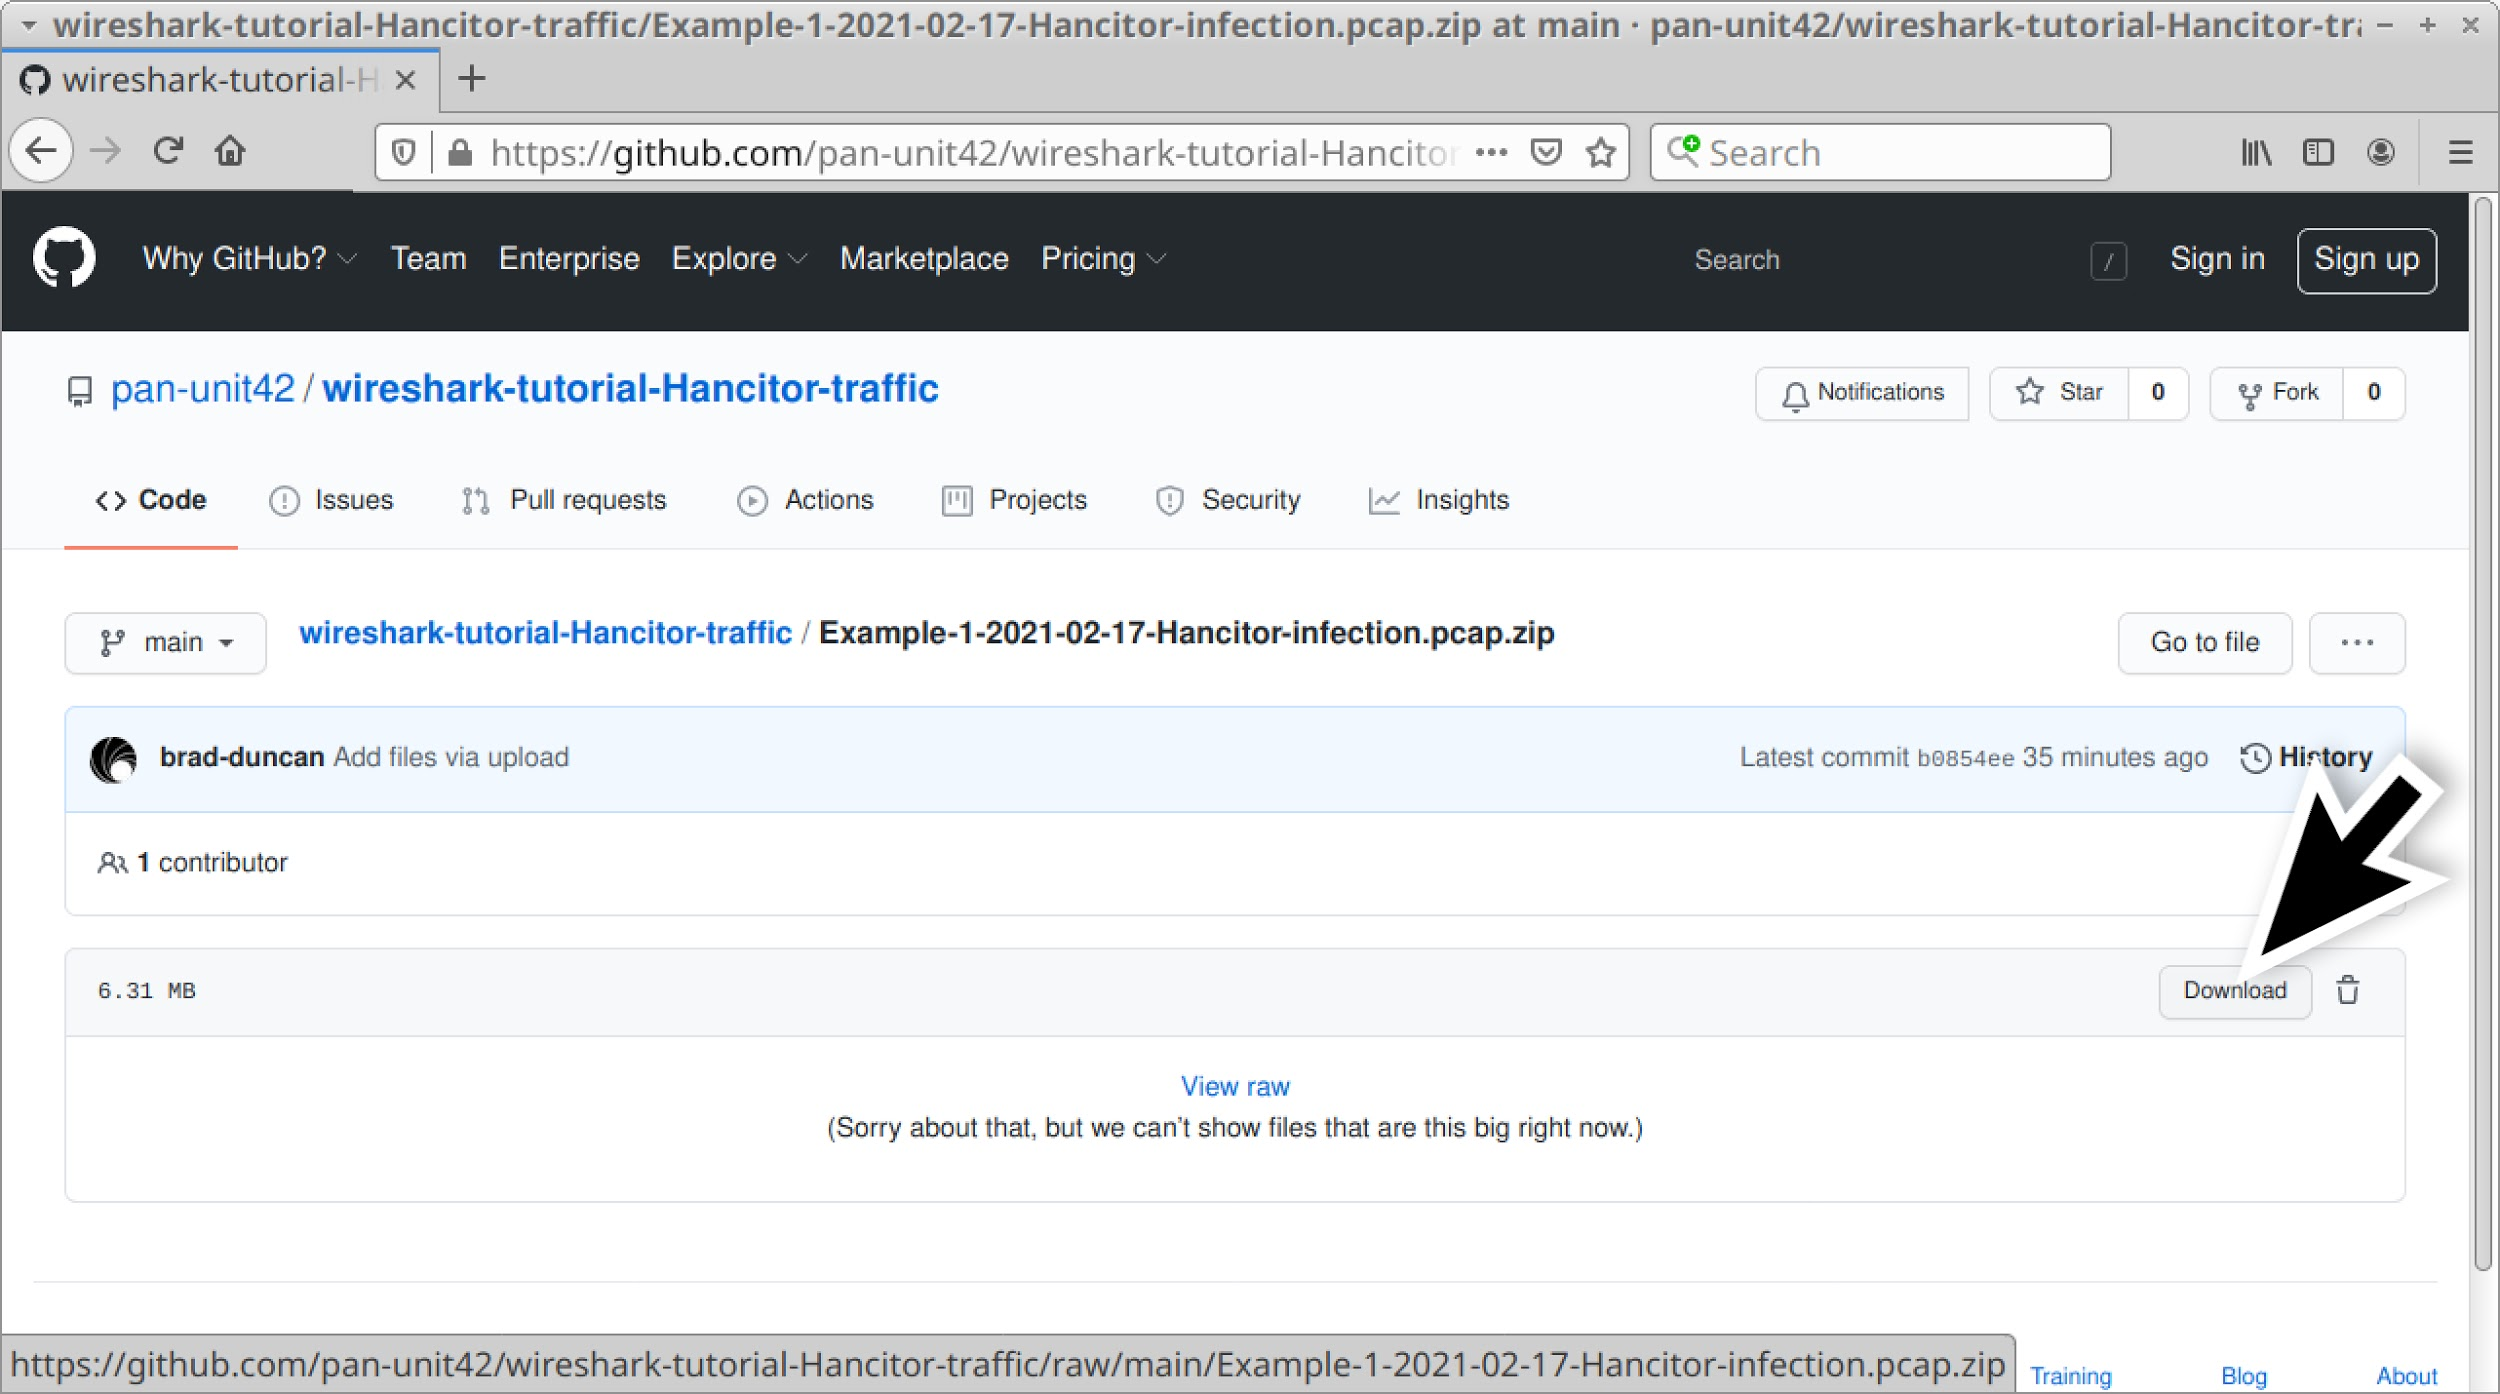 Once a ZIP archive is selected from the GitHub repository, the large black arrow shows where to click to download it.